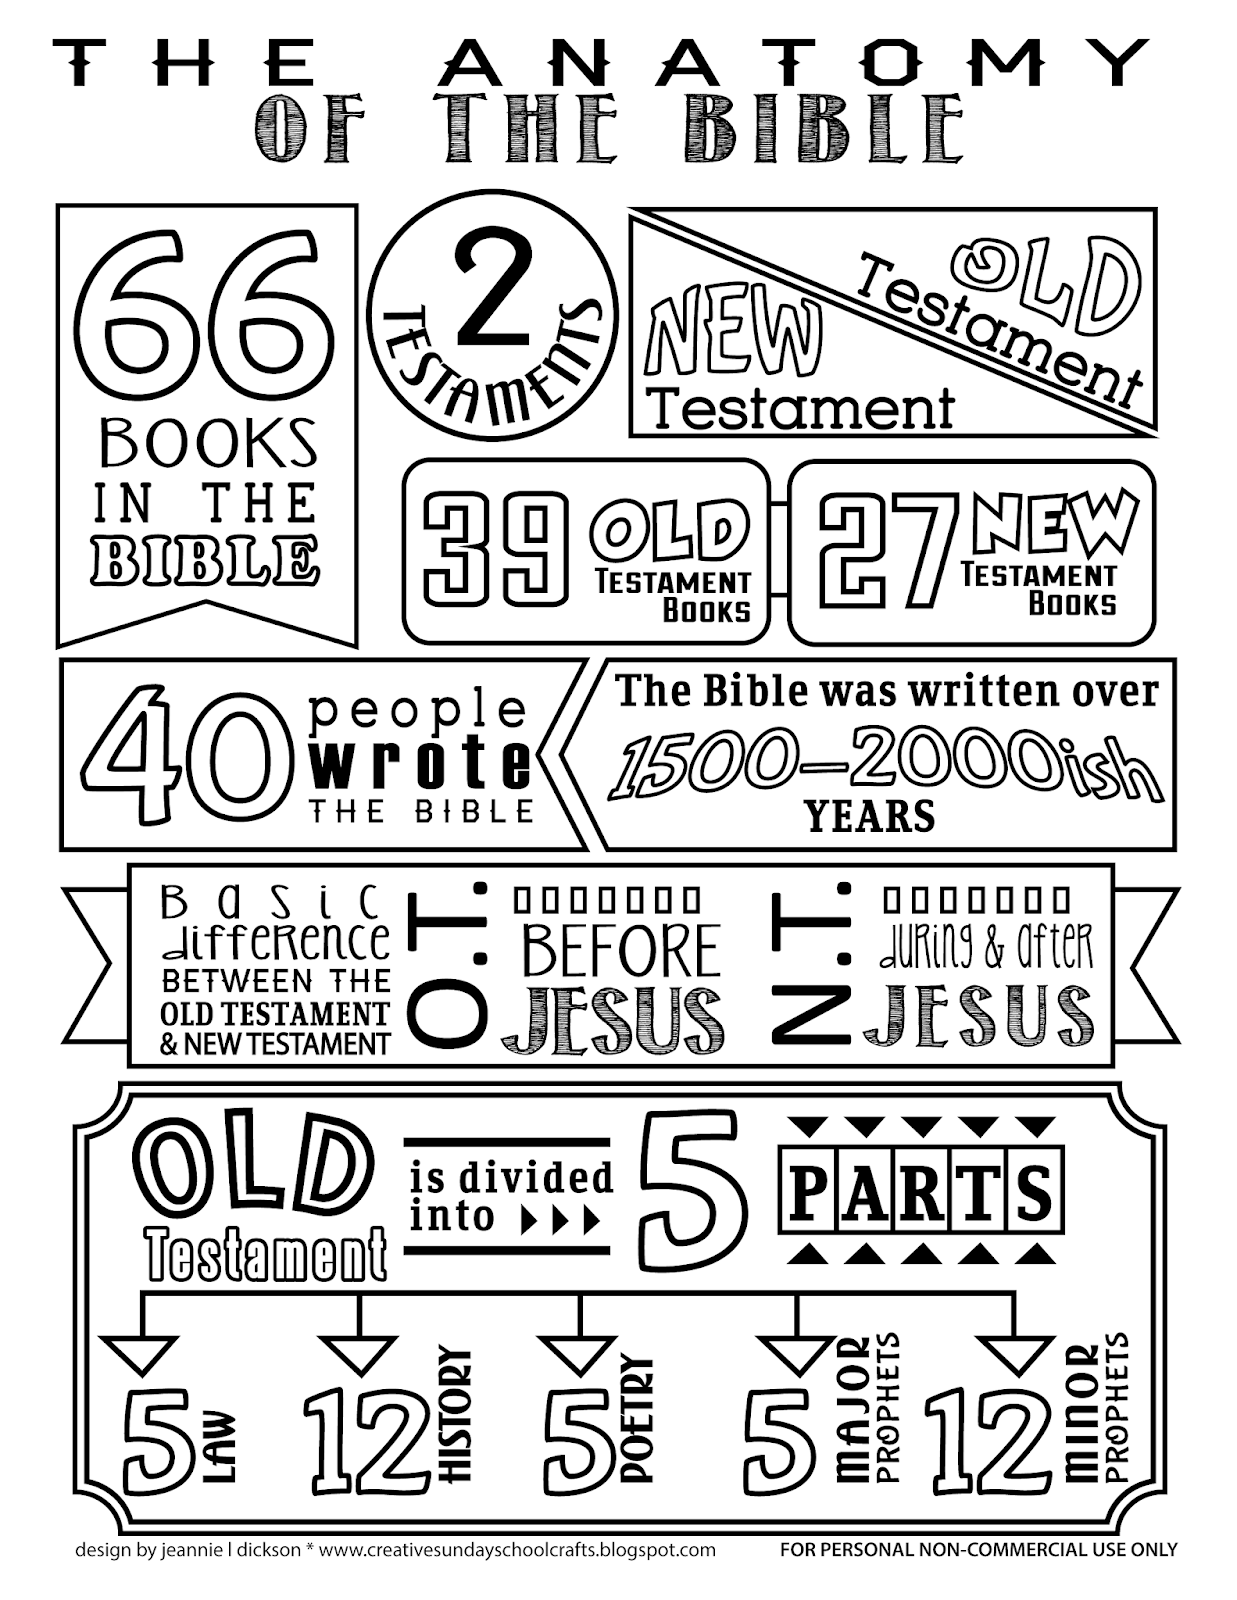 Fun Coloring Page With Info About The Anatomy Of The Bible You Can Download The Pdf File Here Bible Coloring Pages Bible Verse Coloring Bible Study For Kids